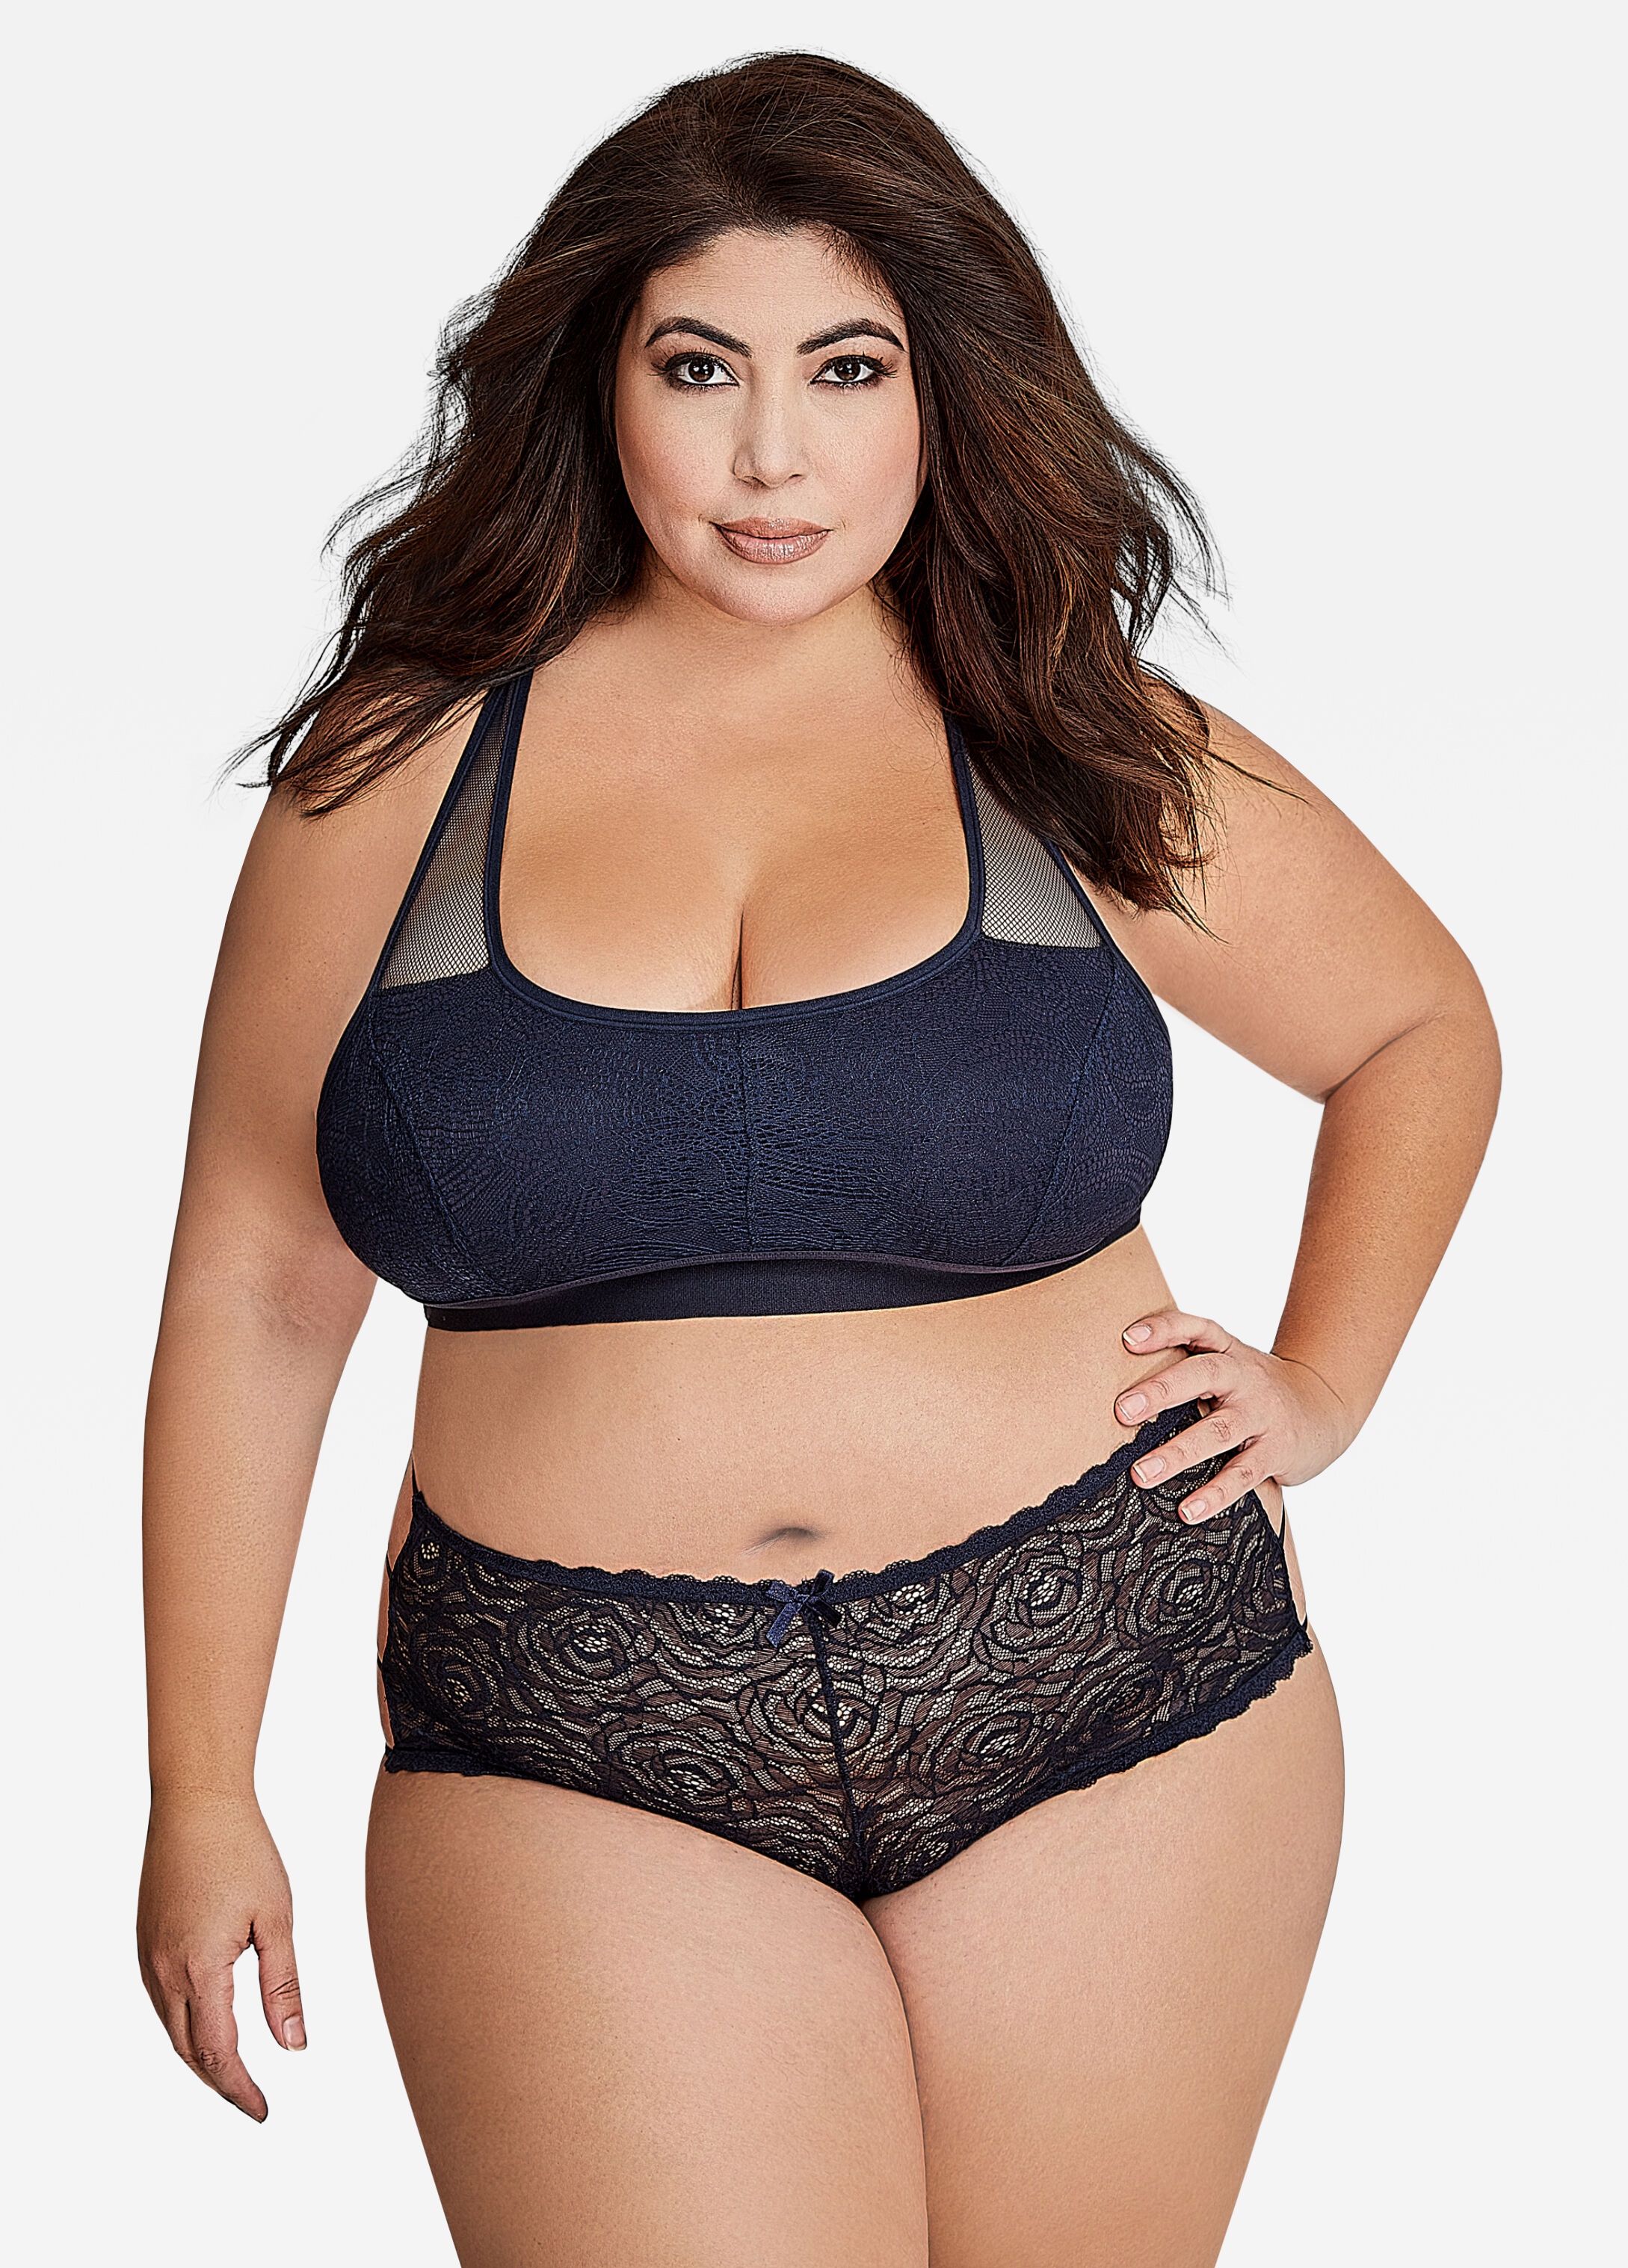 However, plus size intimate apparel encompasses both full figure lingerie sizes and lingerie for plus size women. At HerRoom, our full figure lingerie and lingerie for plus sizes is extensive. We offer brands that specialize just in plus size intimate apparel.